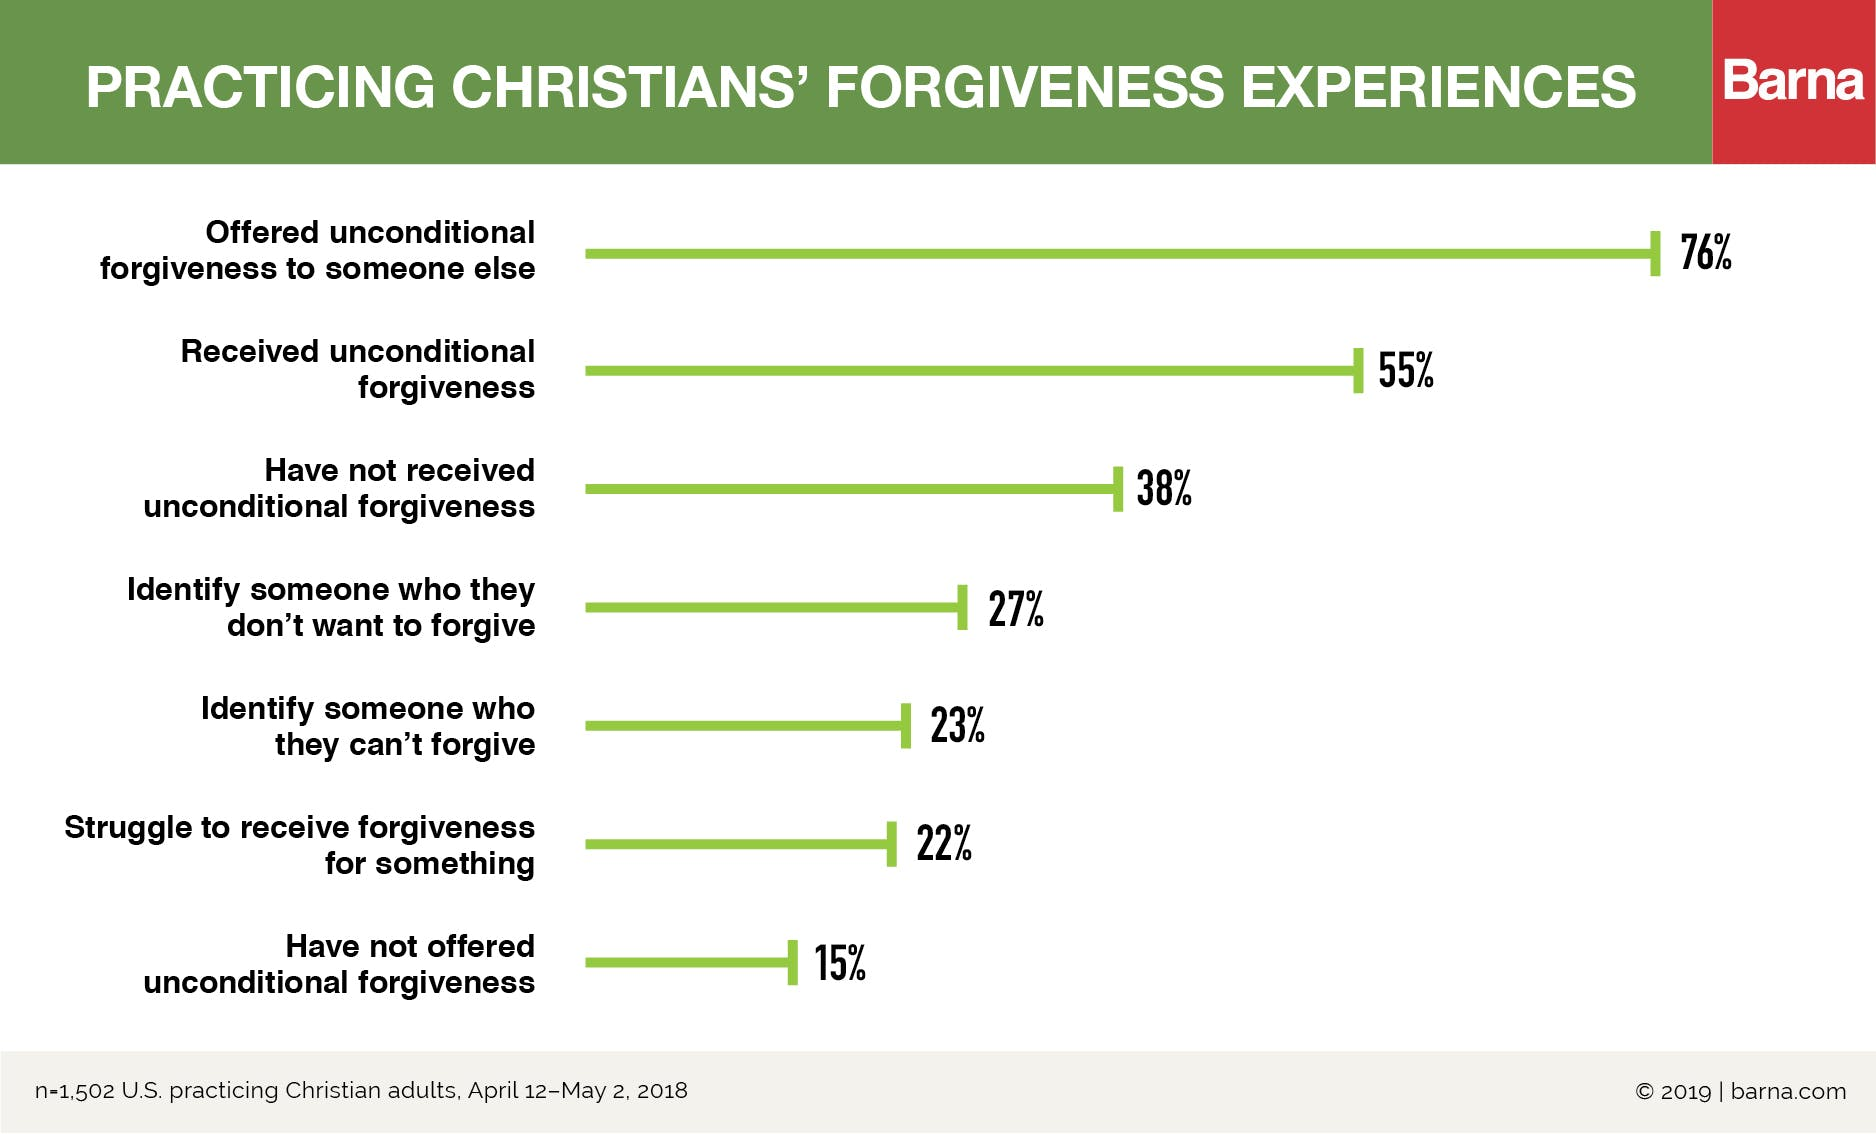 1 in 4 Practicing Christians Struggles to Forgive Someone